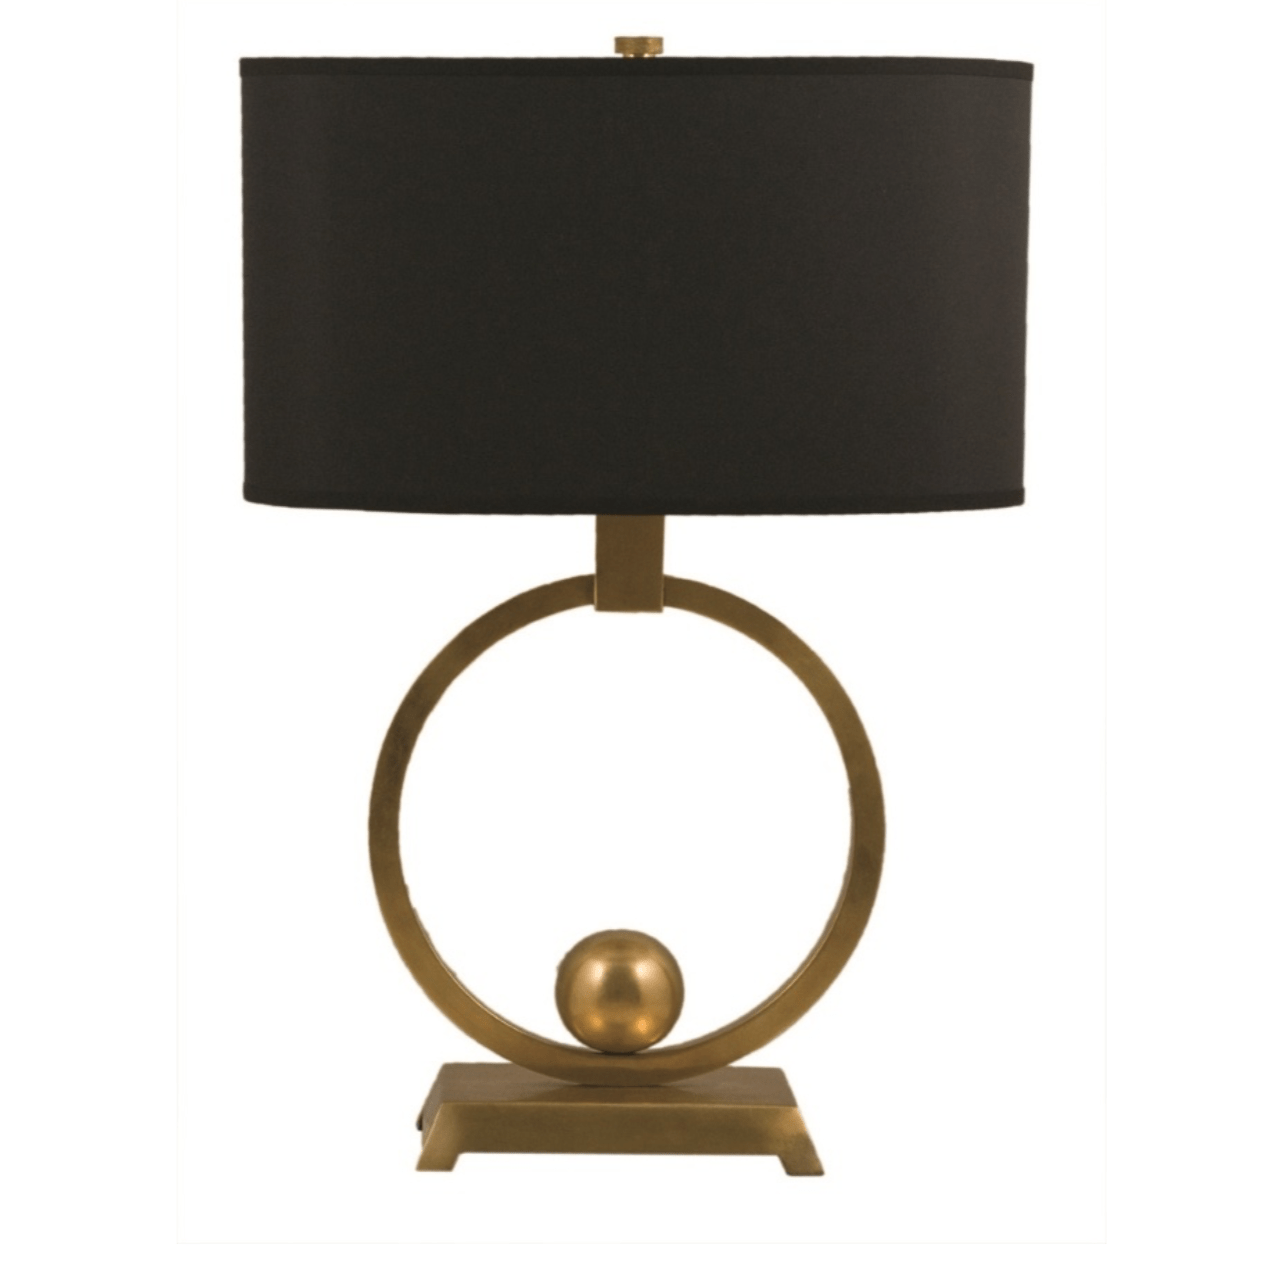 Brass Circle Table Lamp lighting shops lighting stores LED lights  lighting designer